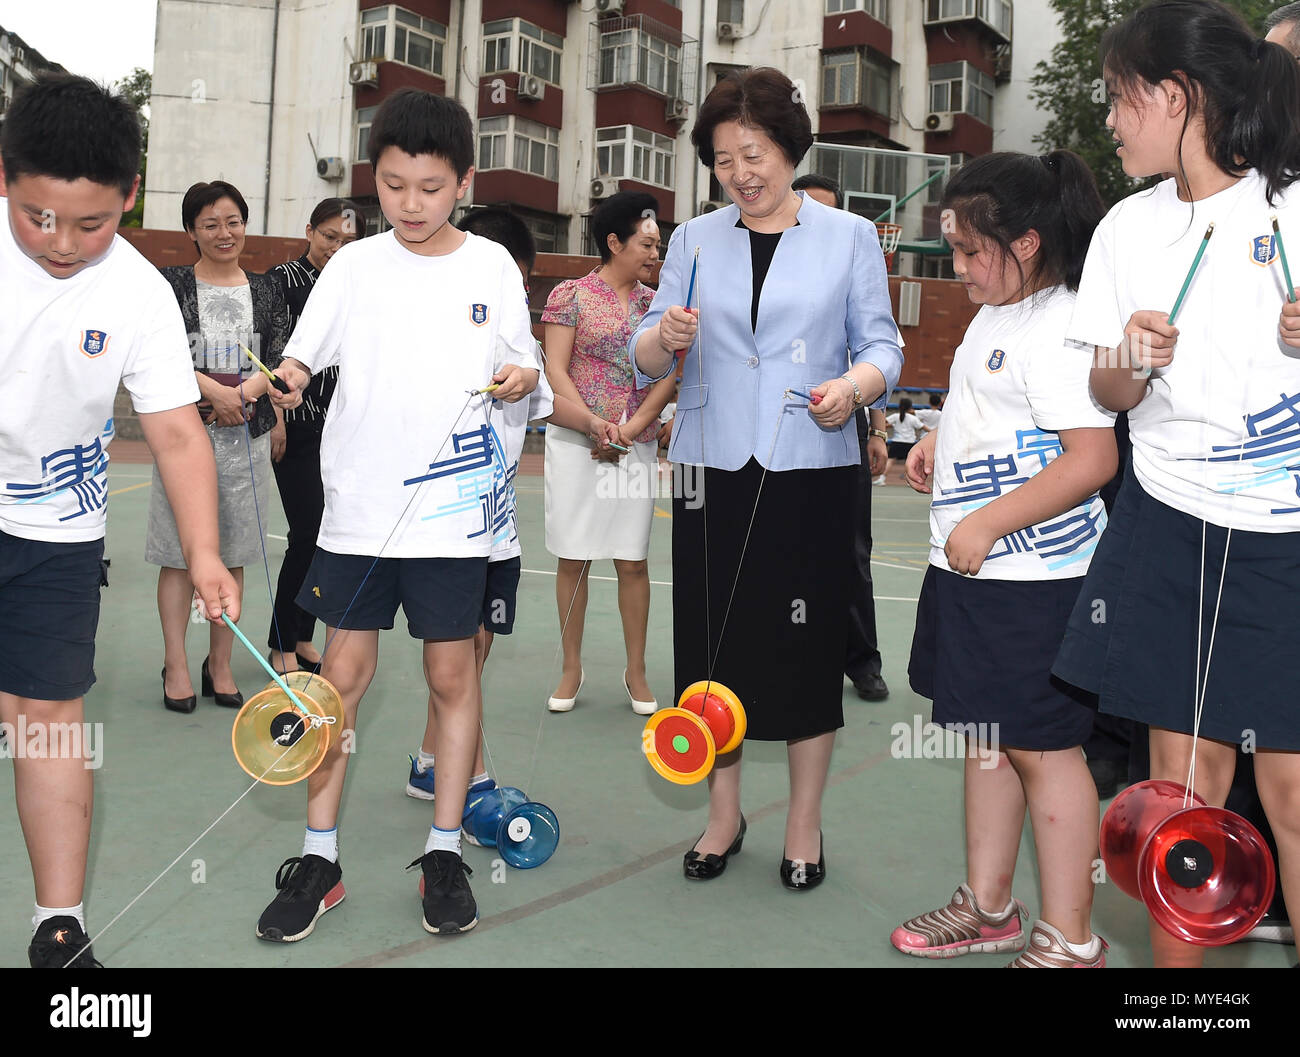 Beijing, China. 6th June, 2018. Chinese Vice Premier Sun Chunlan, also a member of the Political Bureau of the Communist Party of China Central Committee, visits a primary school in Beijing, capital of China, June 6, 2018. On Wednesday, the annual National Eye Health Day, Vice Premier Sun Chunlan ordered schools and health departments to do more to prevent shortsightedness among young people. Credit: Yan Yan/Xinhua/Alamy Live News - Stock Image